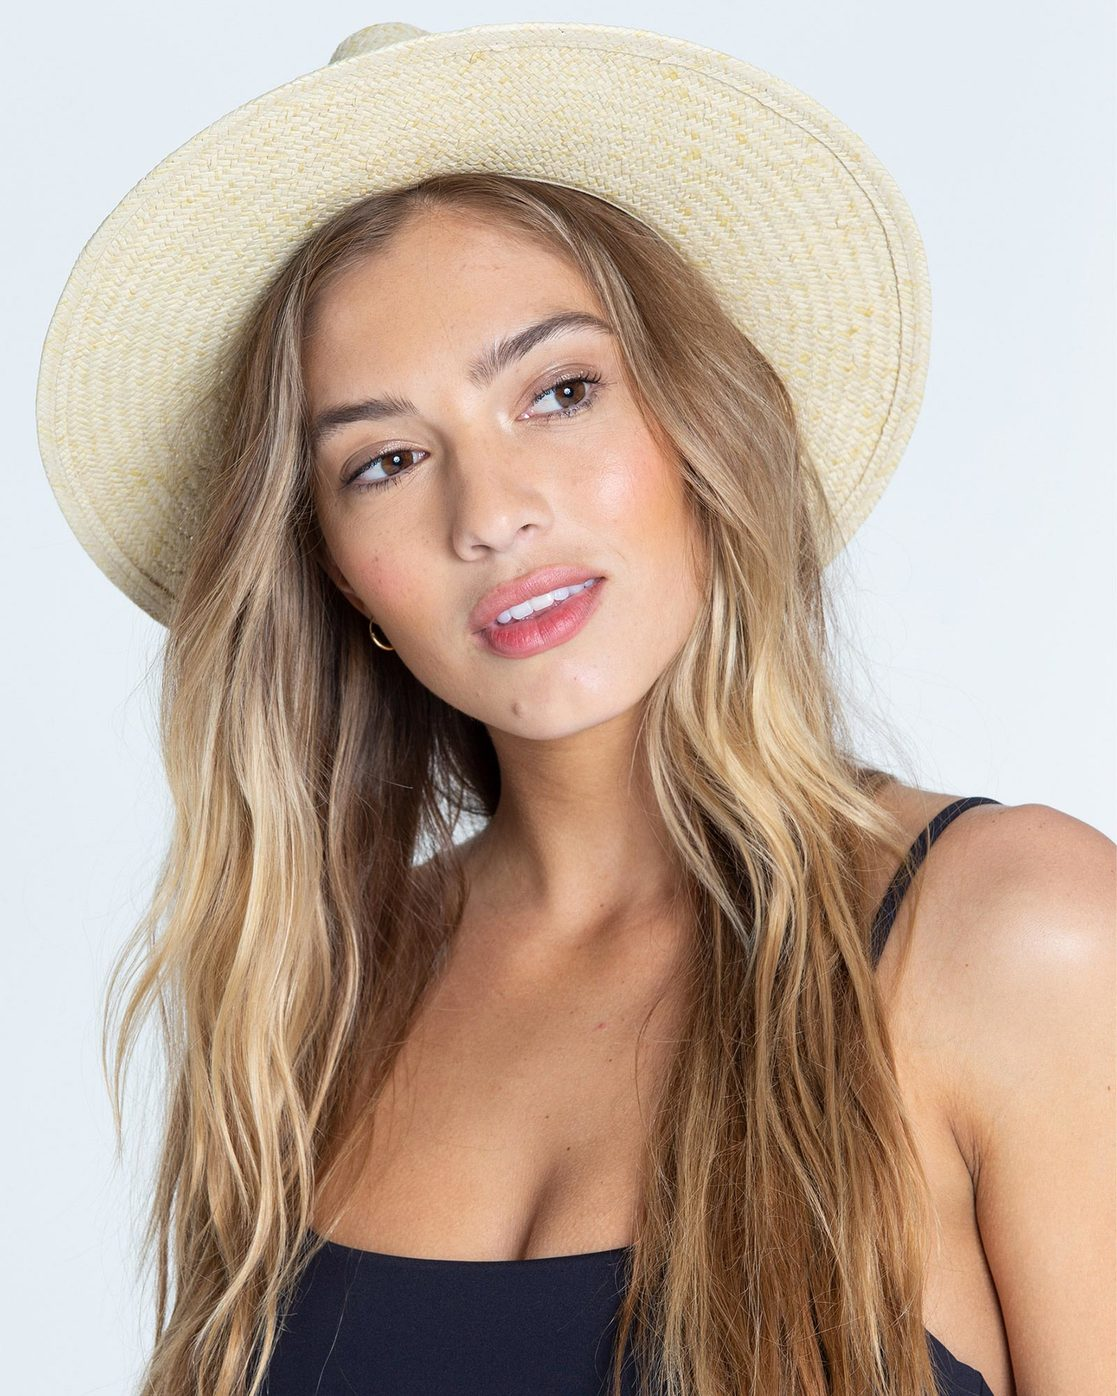 Be You Straw Hat